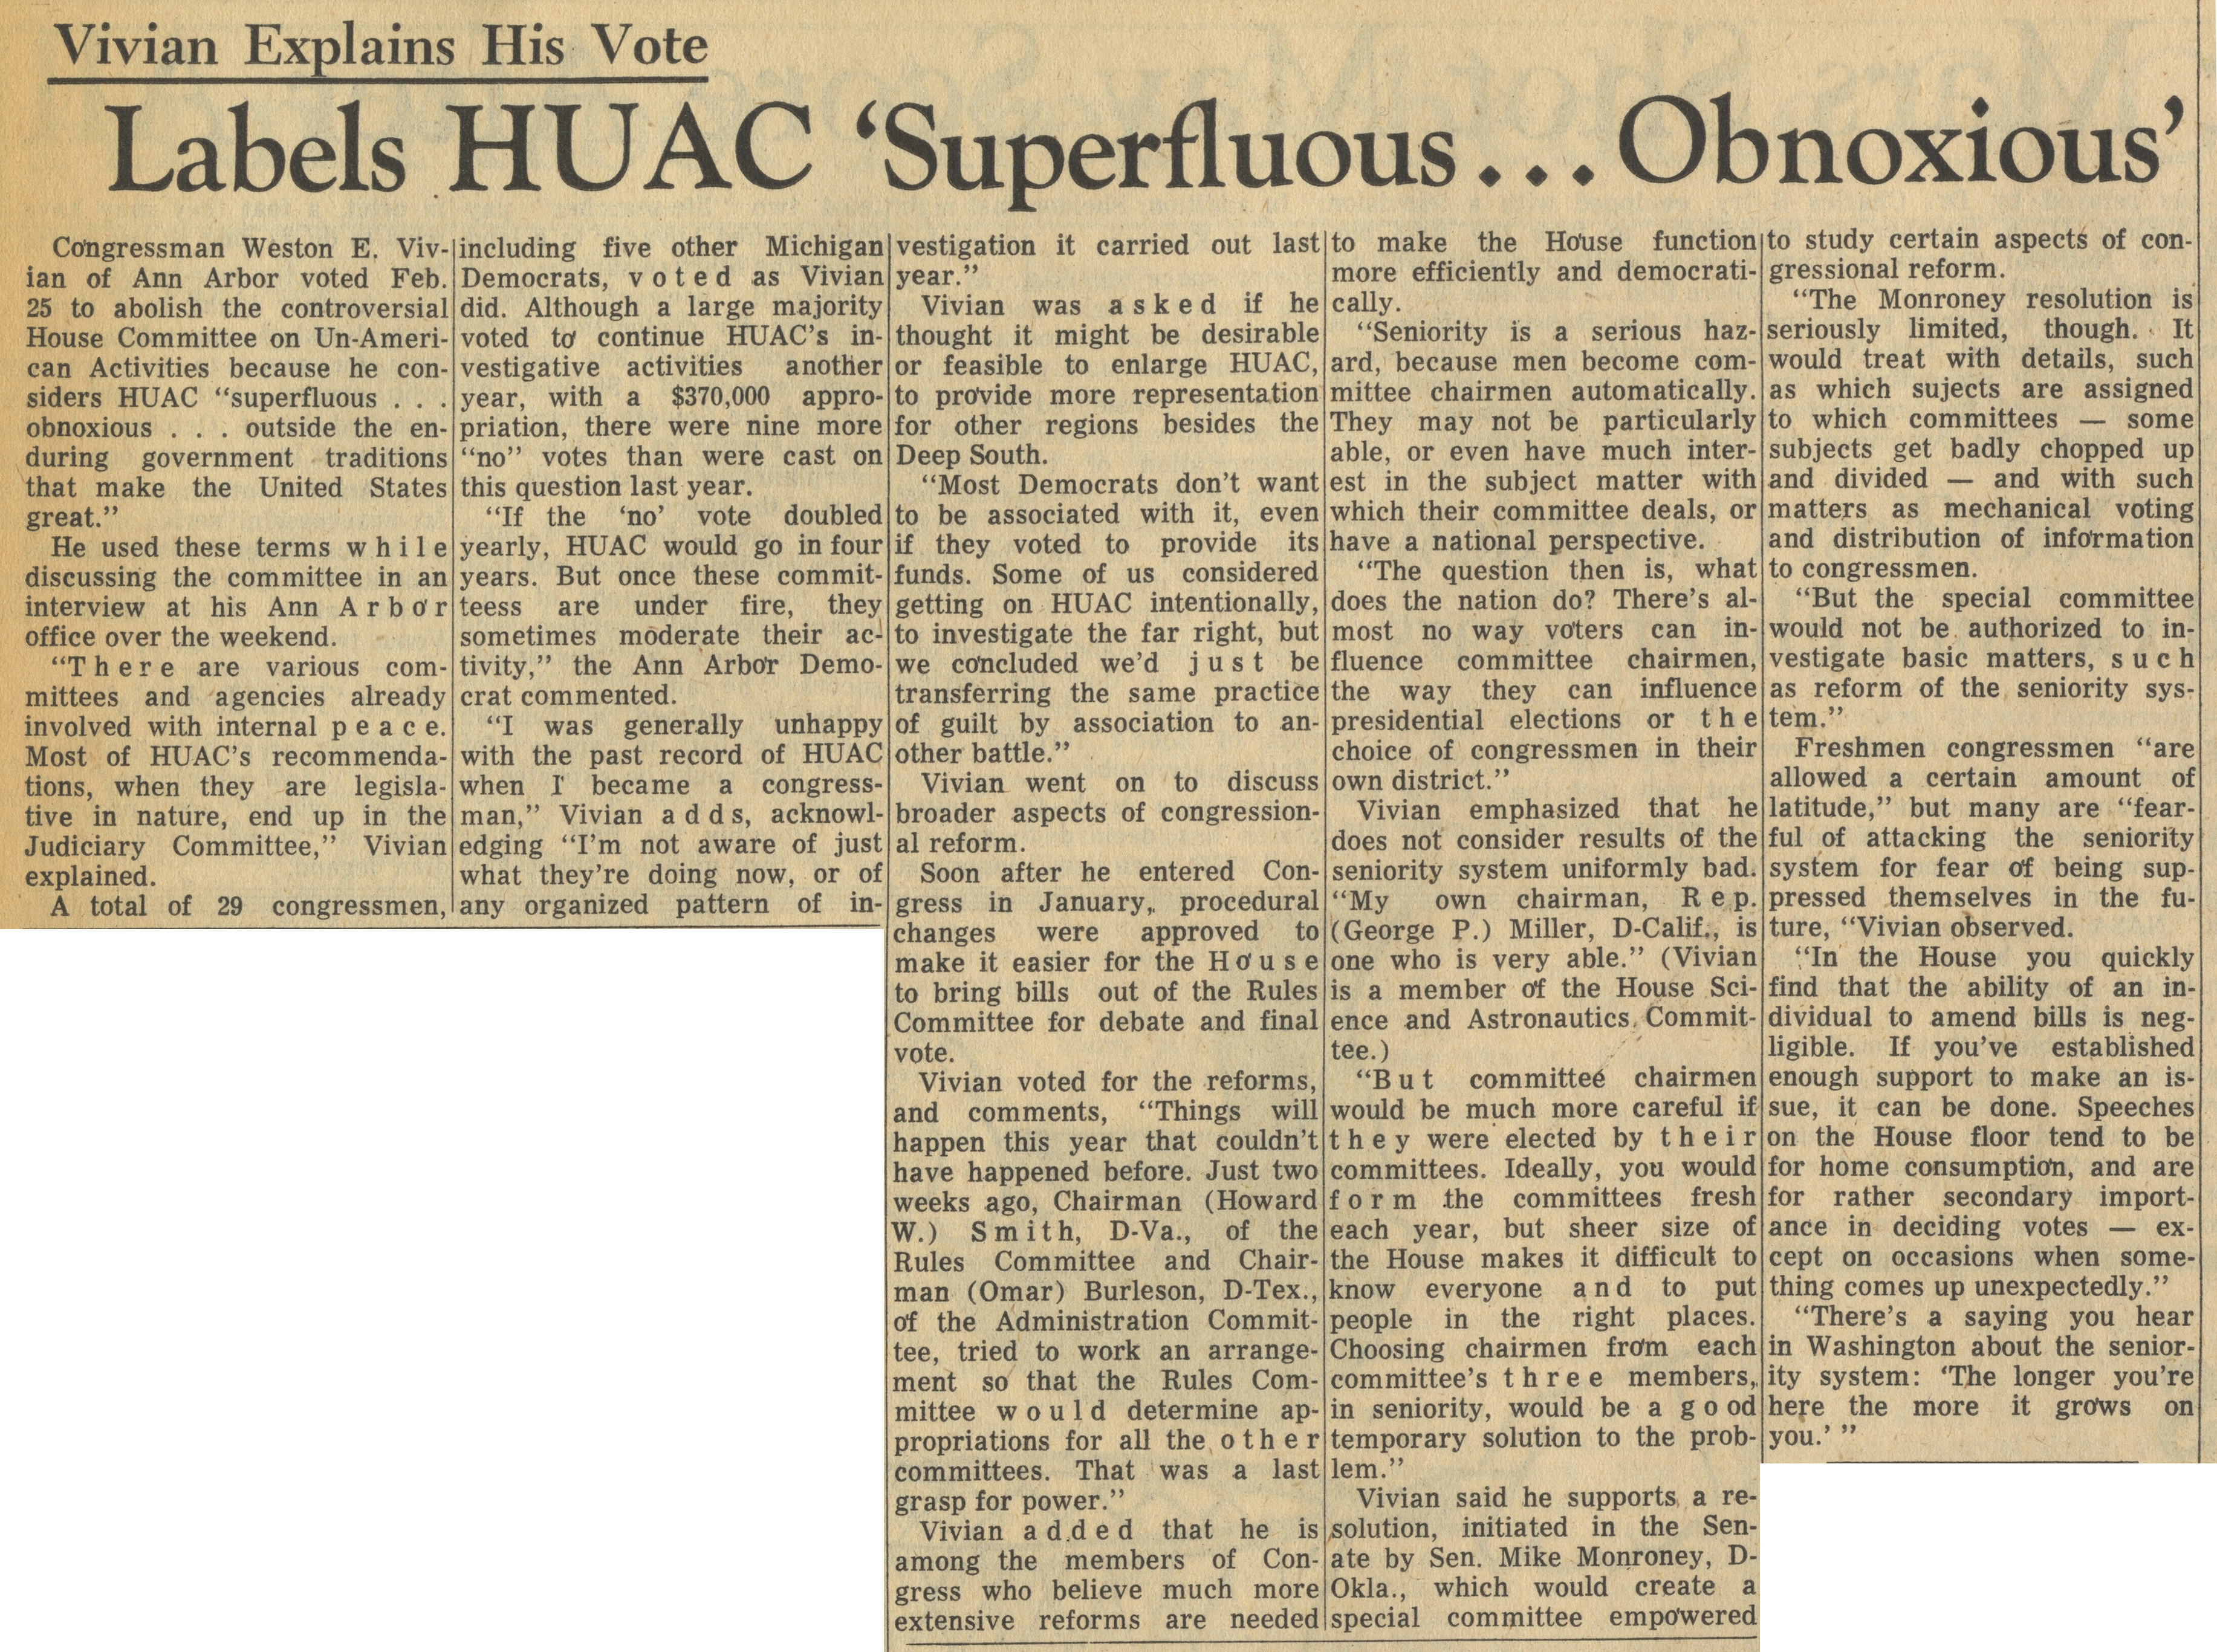 Labels HUAC 'Superfluous...Obnoxious' image